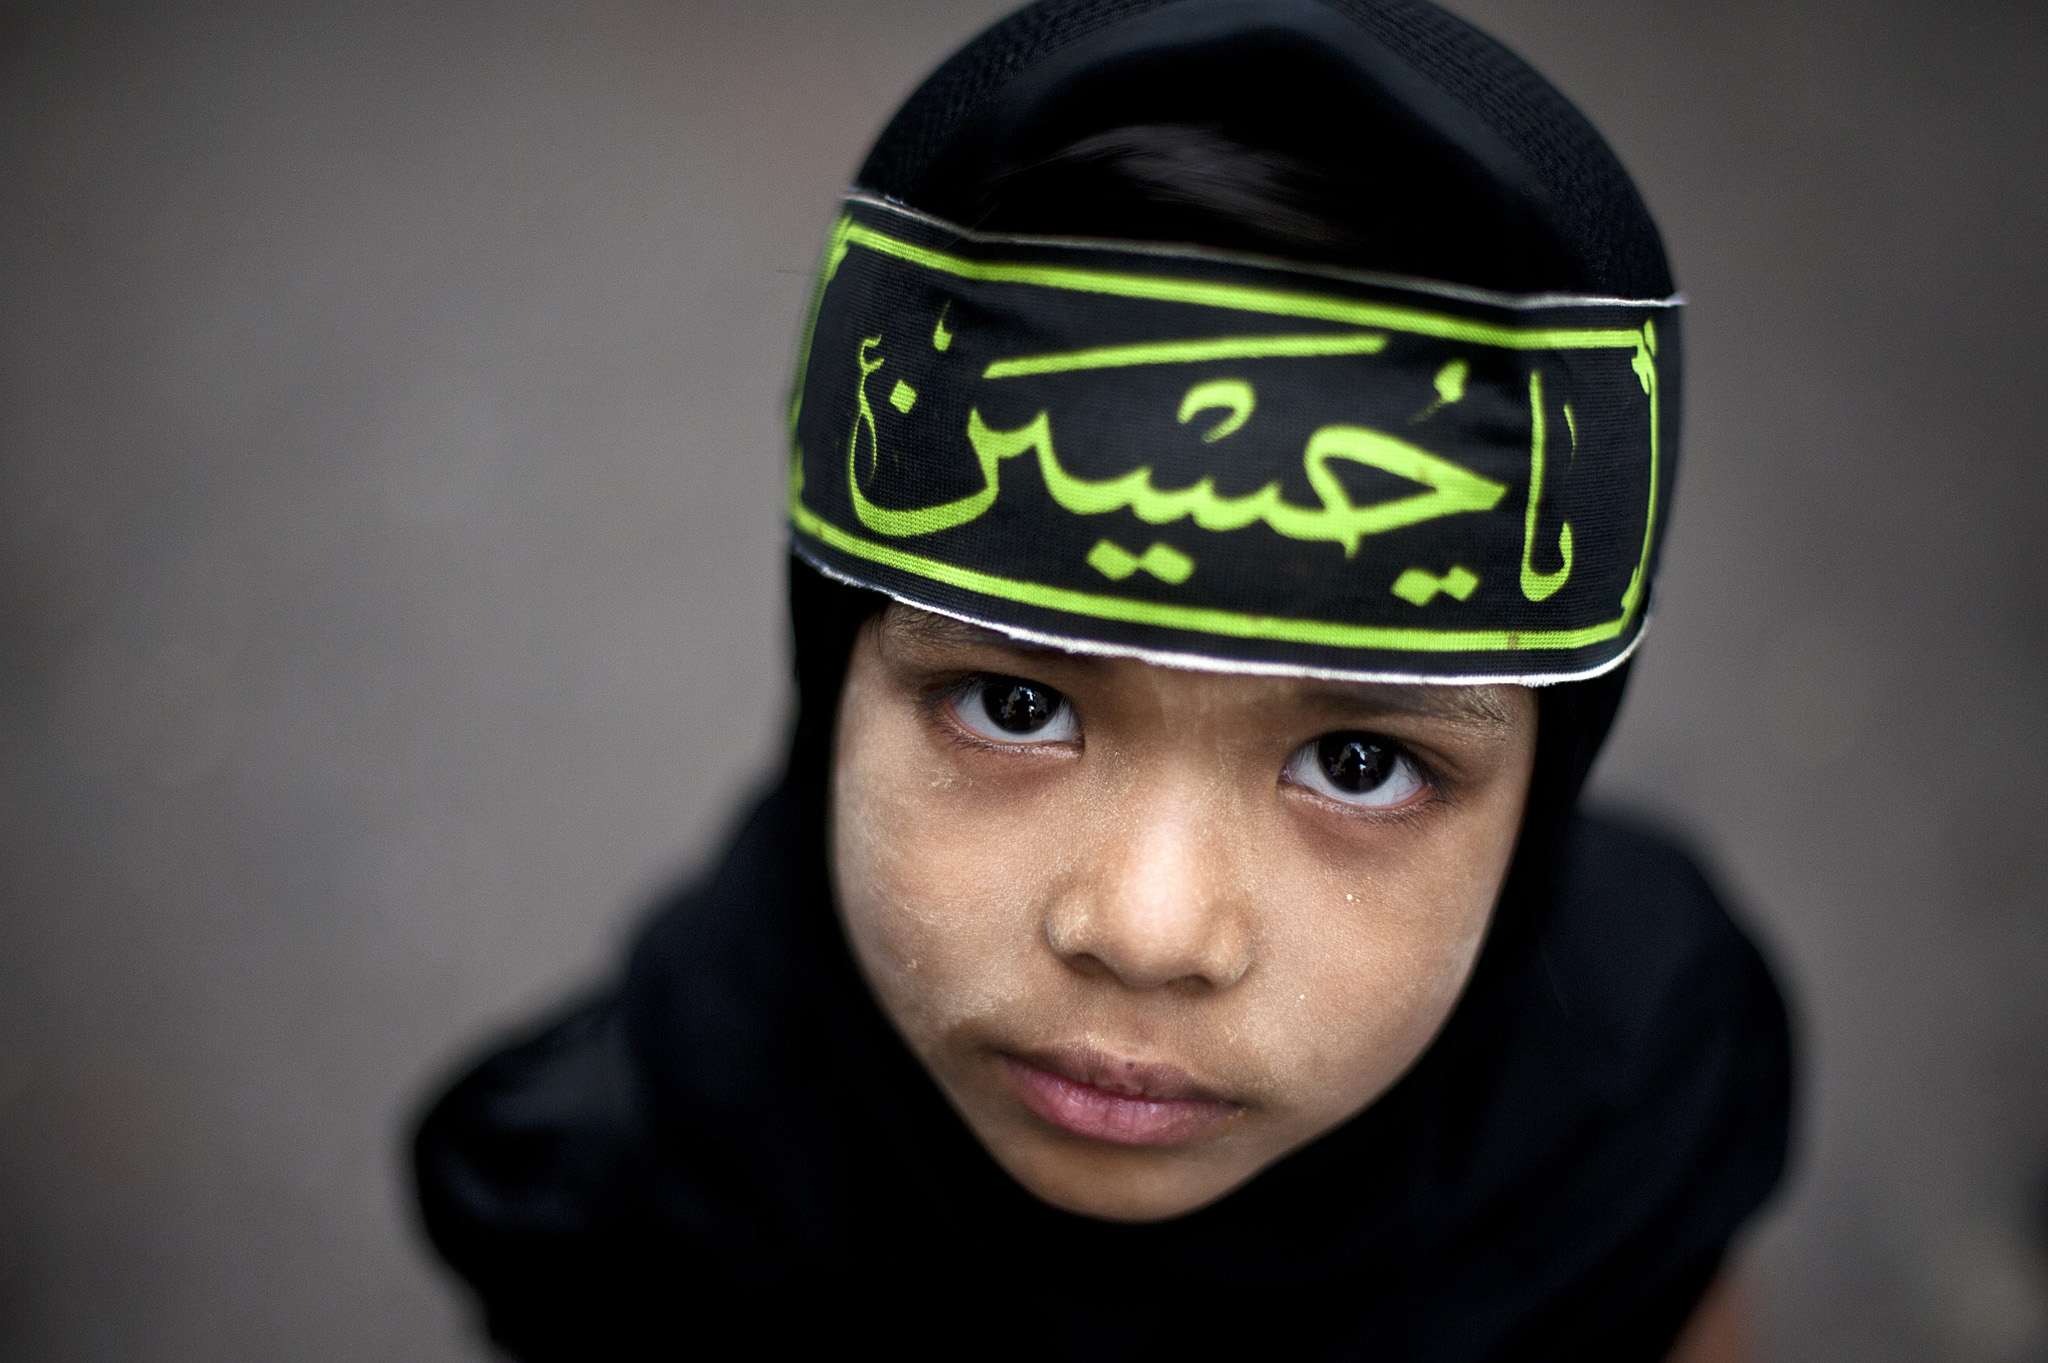 A Myanmar Shiite Muslim child looks up w...A Myanmar Shiite Muslim child looks up while outside a mosque during a procession to mark the Ashura festival in Yangon on November 4, 2014. Ashura marks the peak of 10 days of mourning for the death of Imam Hussein, one of the most revered figures in Shiite Islam.     AFP PHOTO / Ye Aung THUYe Aung Thu/AFP/Getty Images